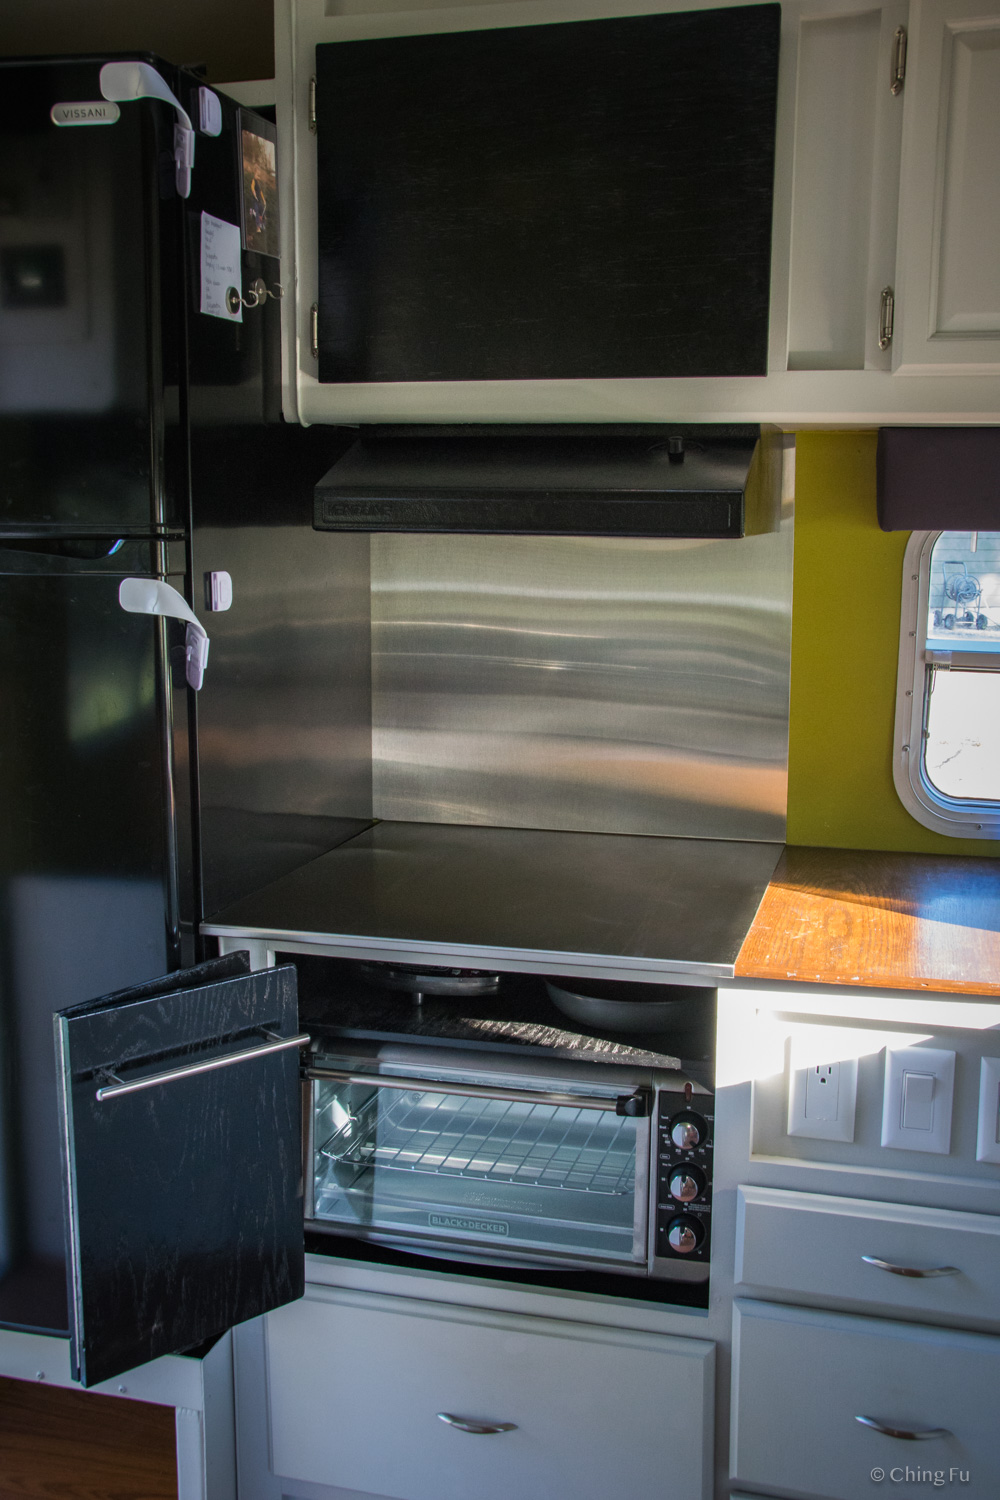 Part of our kitchen. Our induction cooktop is stored above the toaster oven.